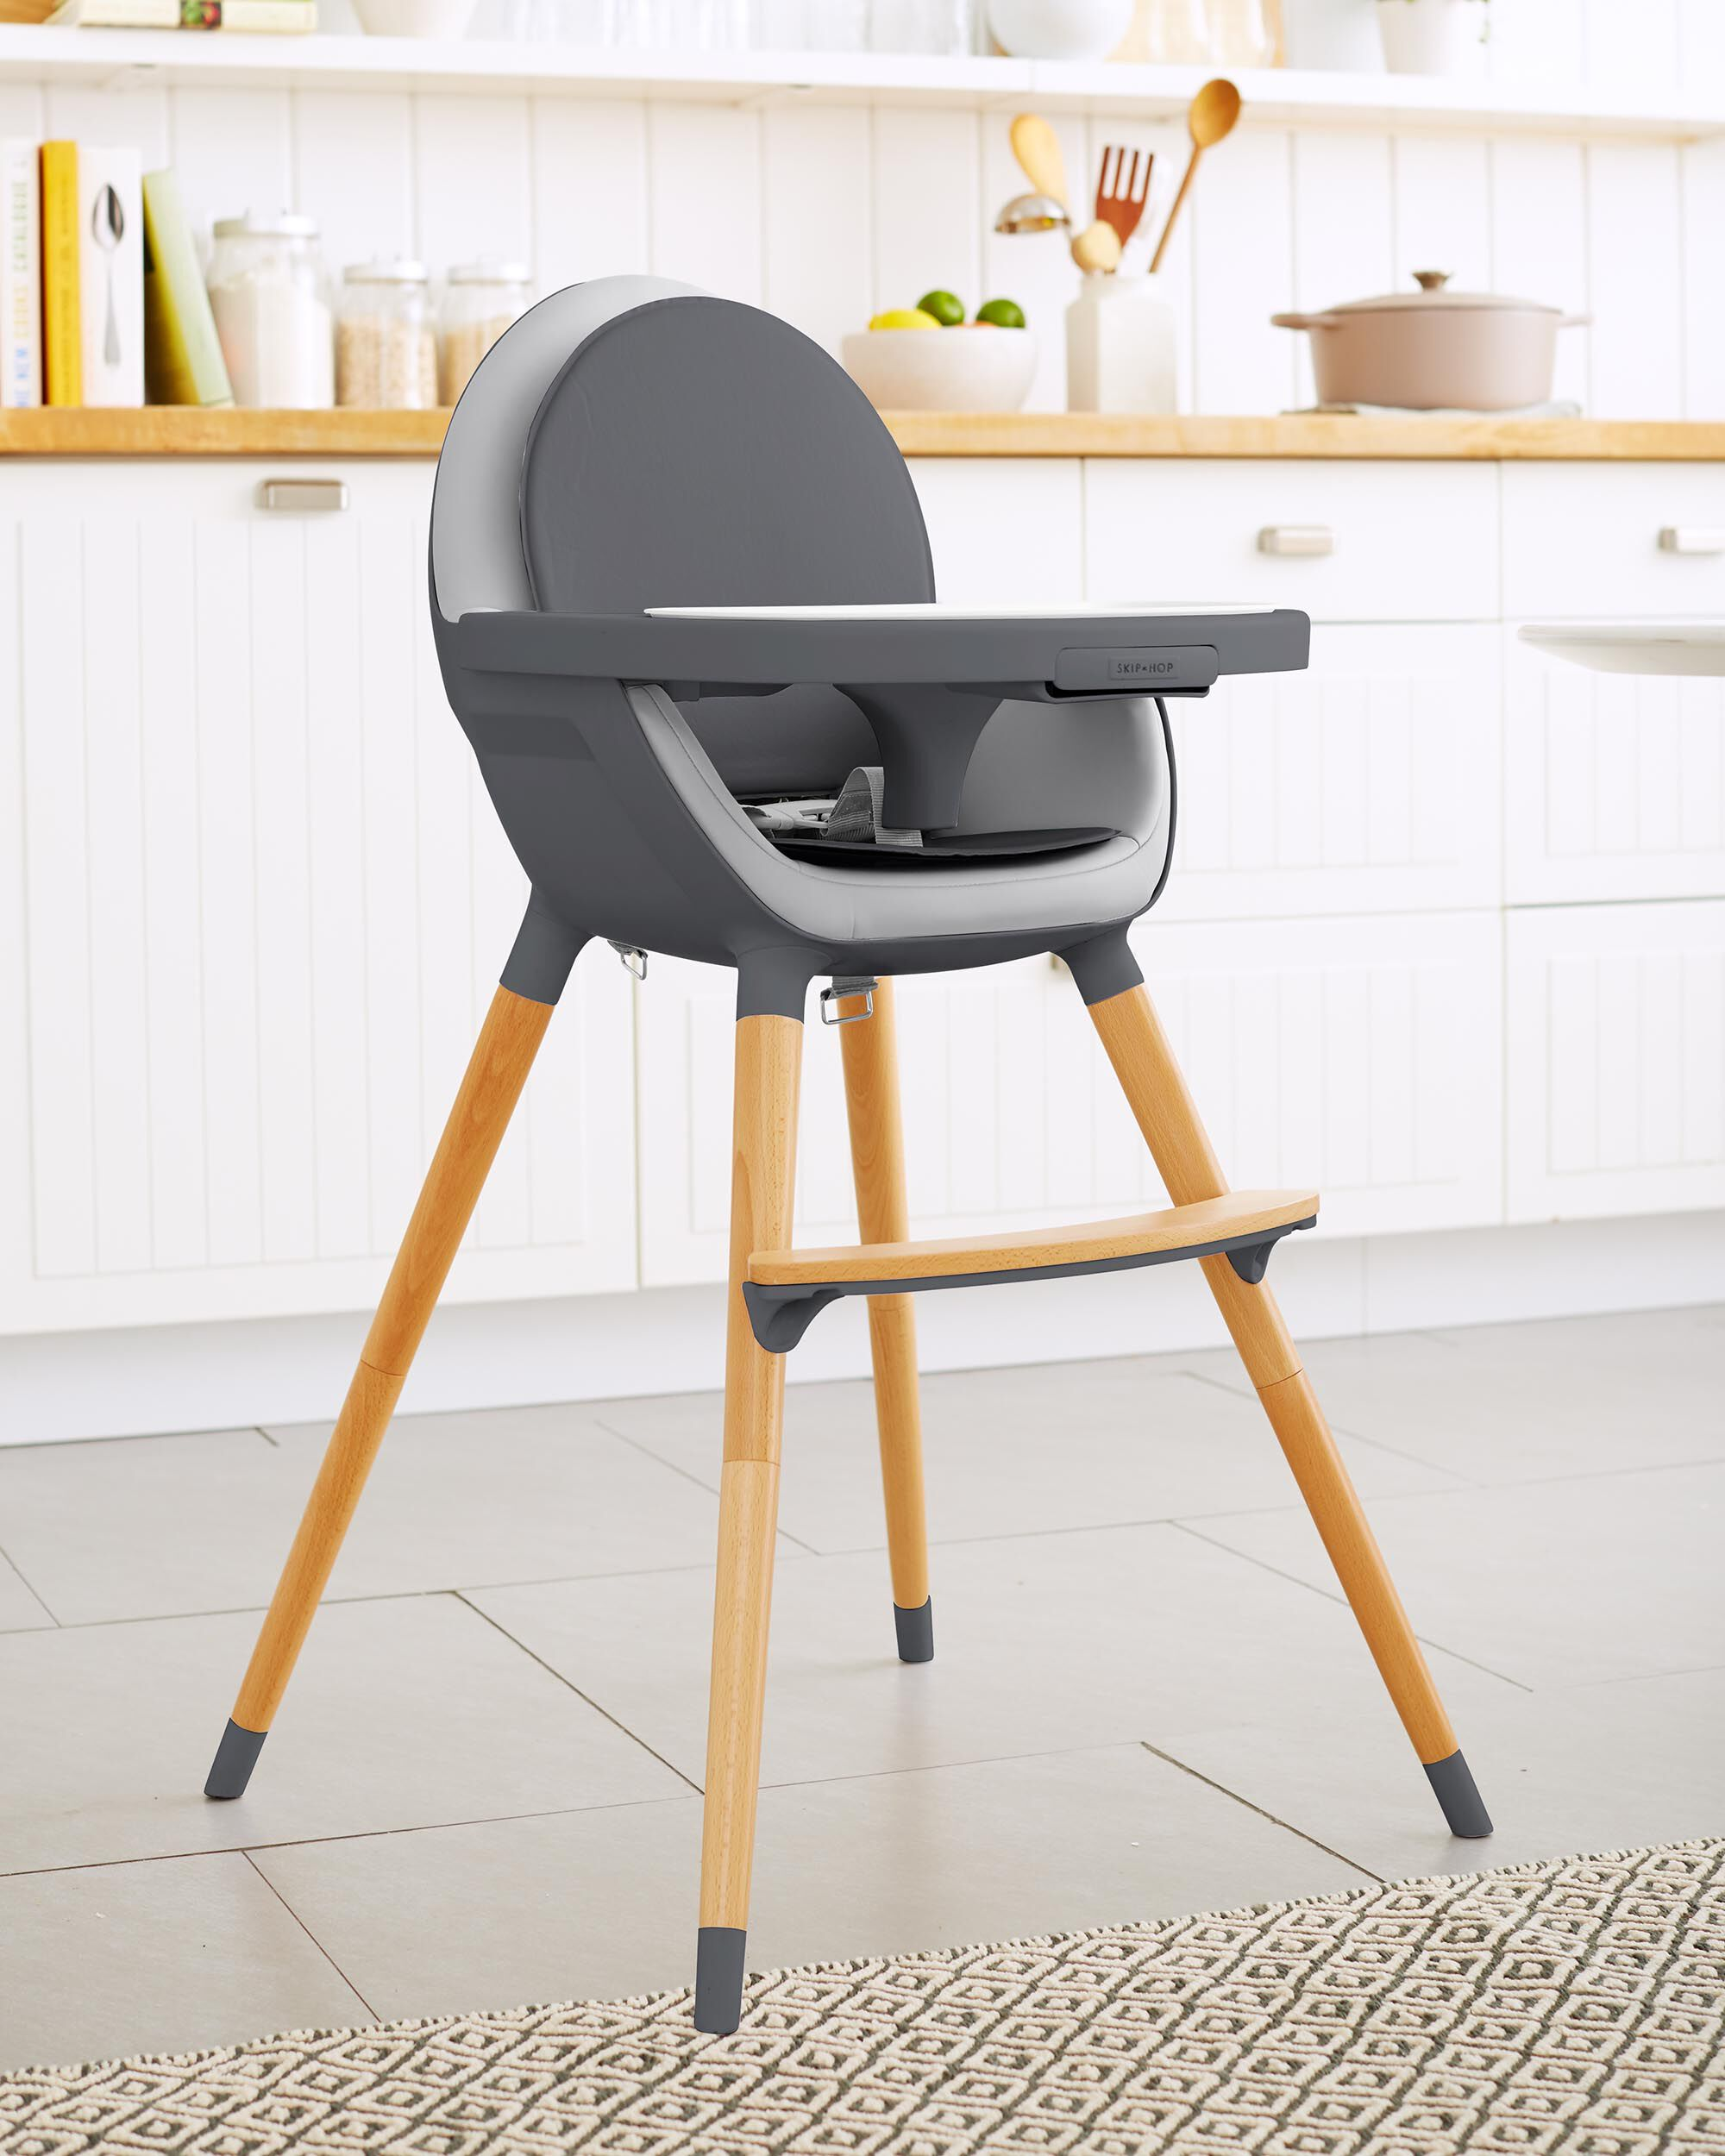 safety 1st high chair recall swivel glider rocker recliner ottoman carter s dark wood furniture eddie bauer